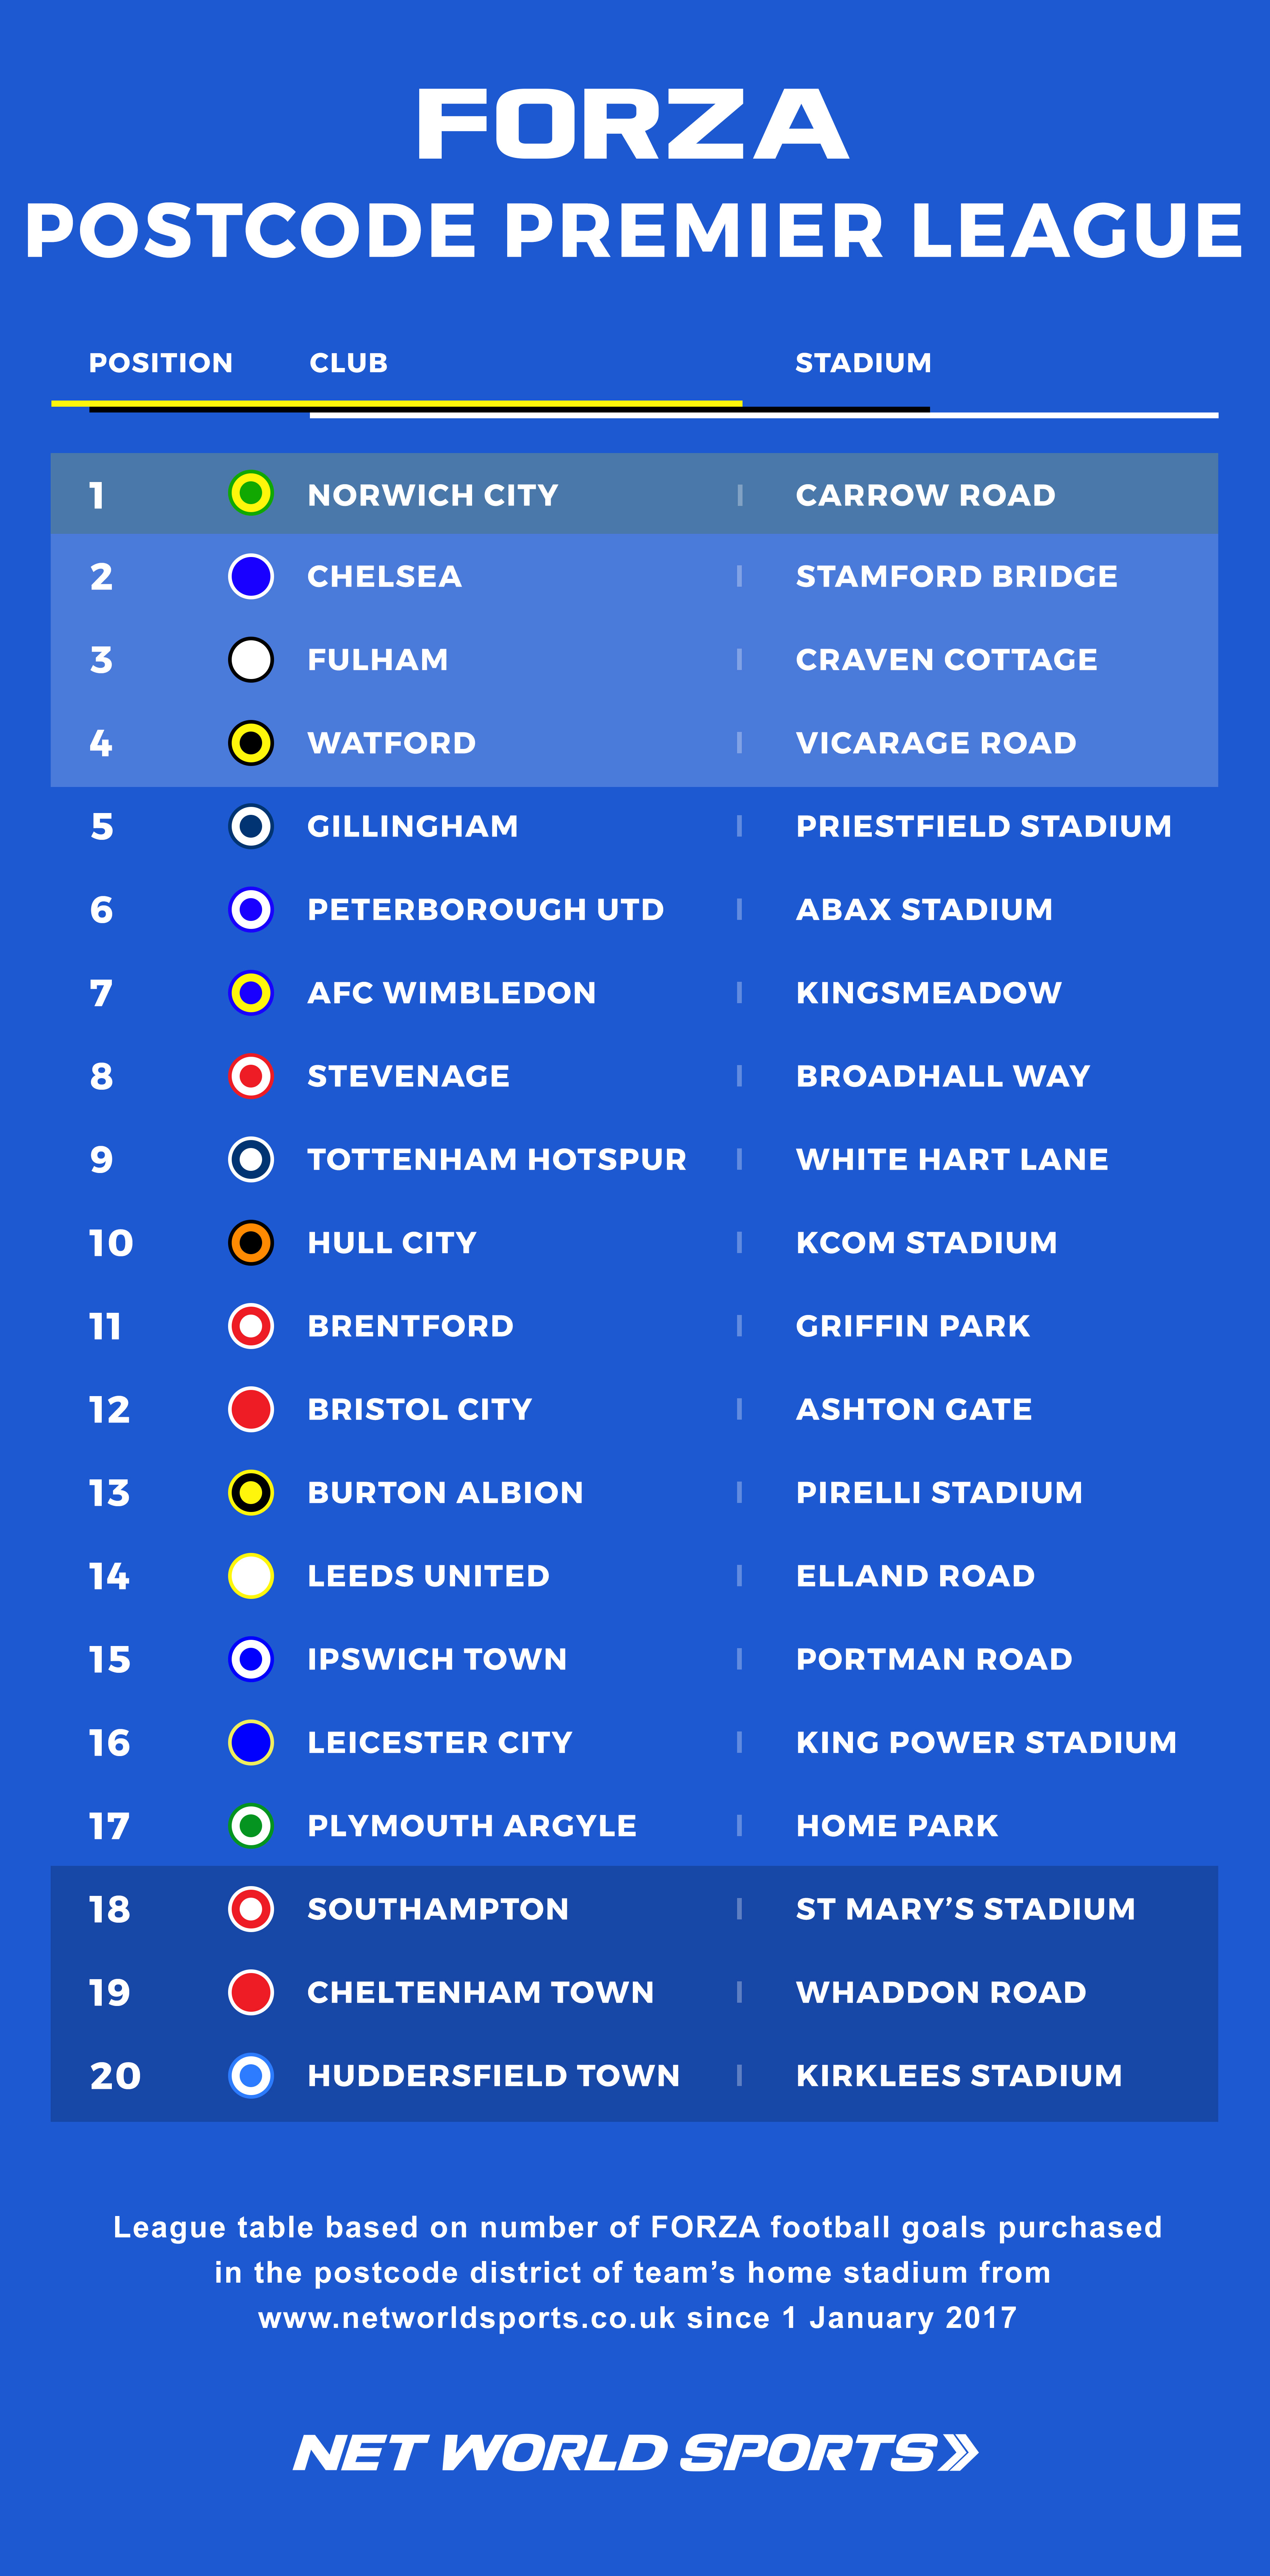 The FORZA Postcode Premier League based on sales of FORZA goals from Net World Sports